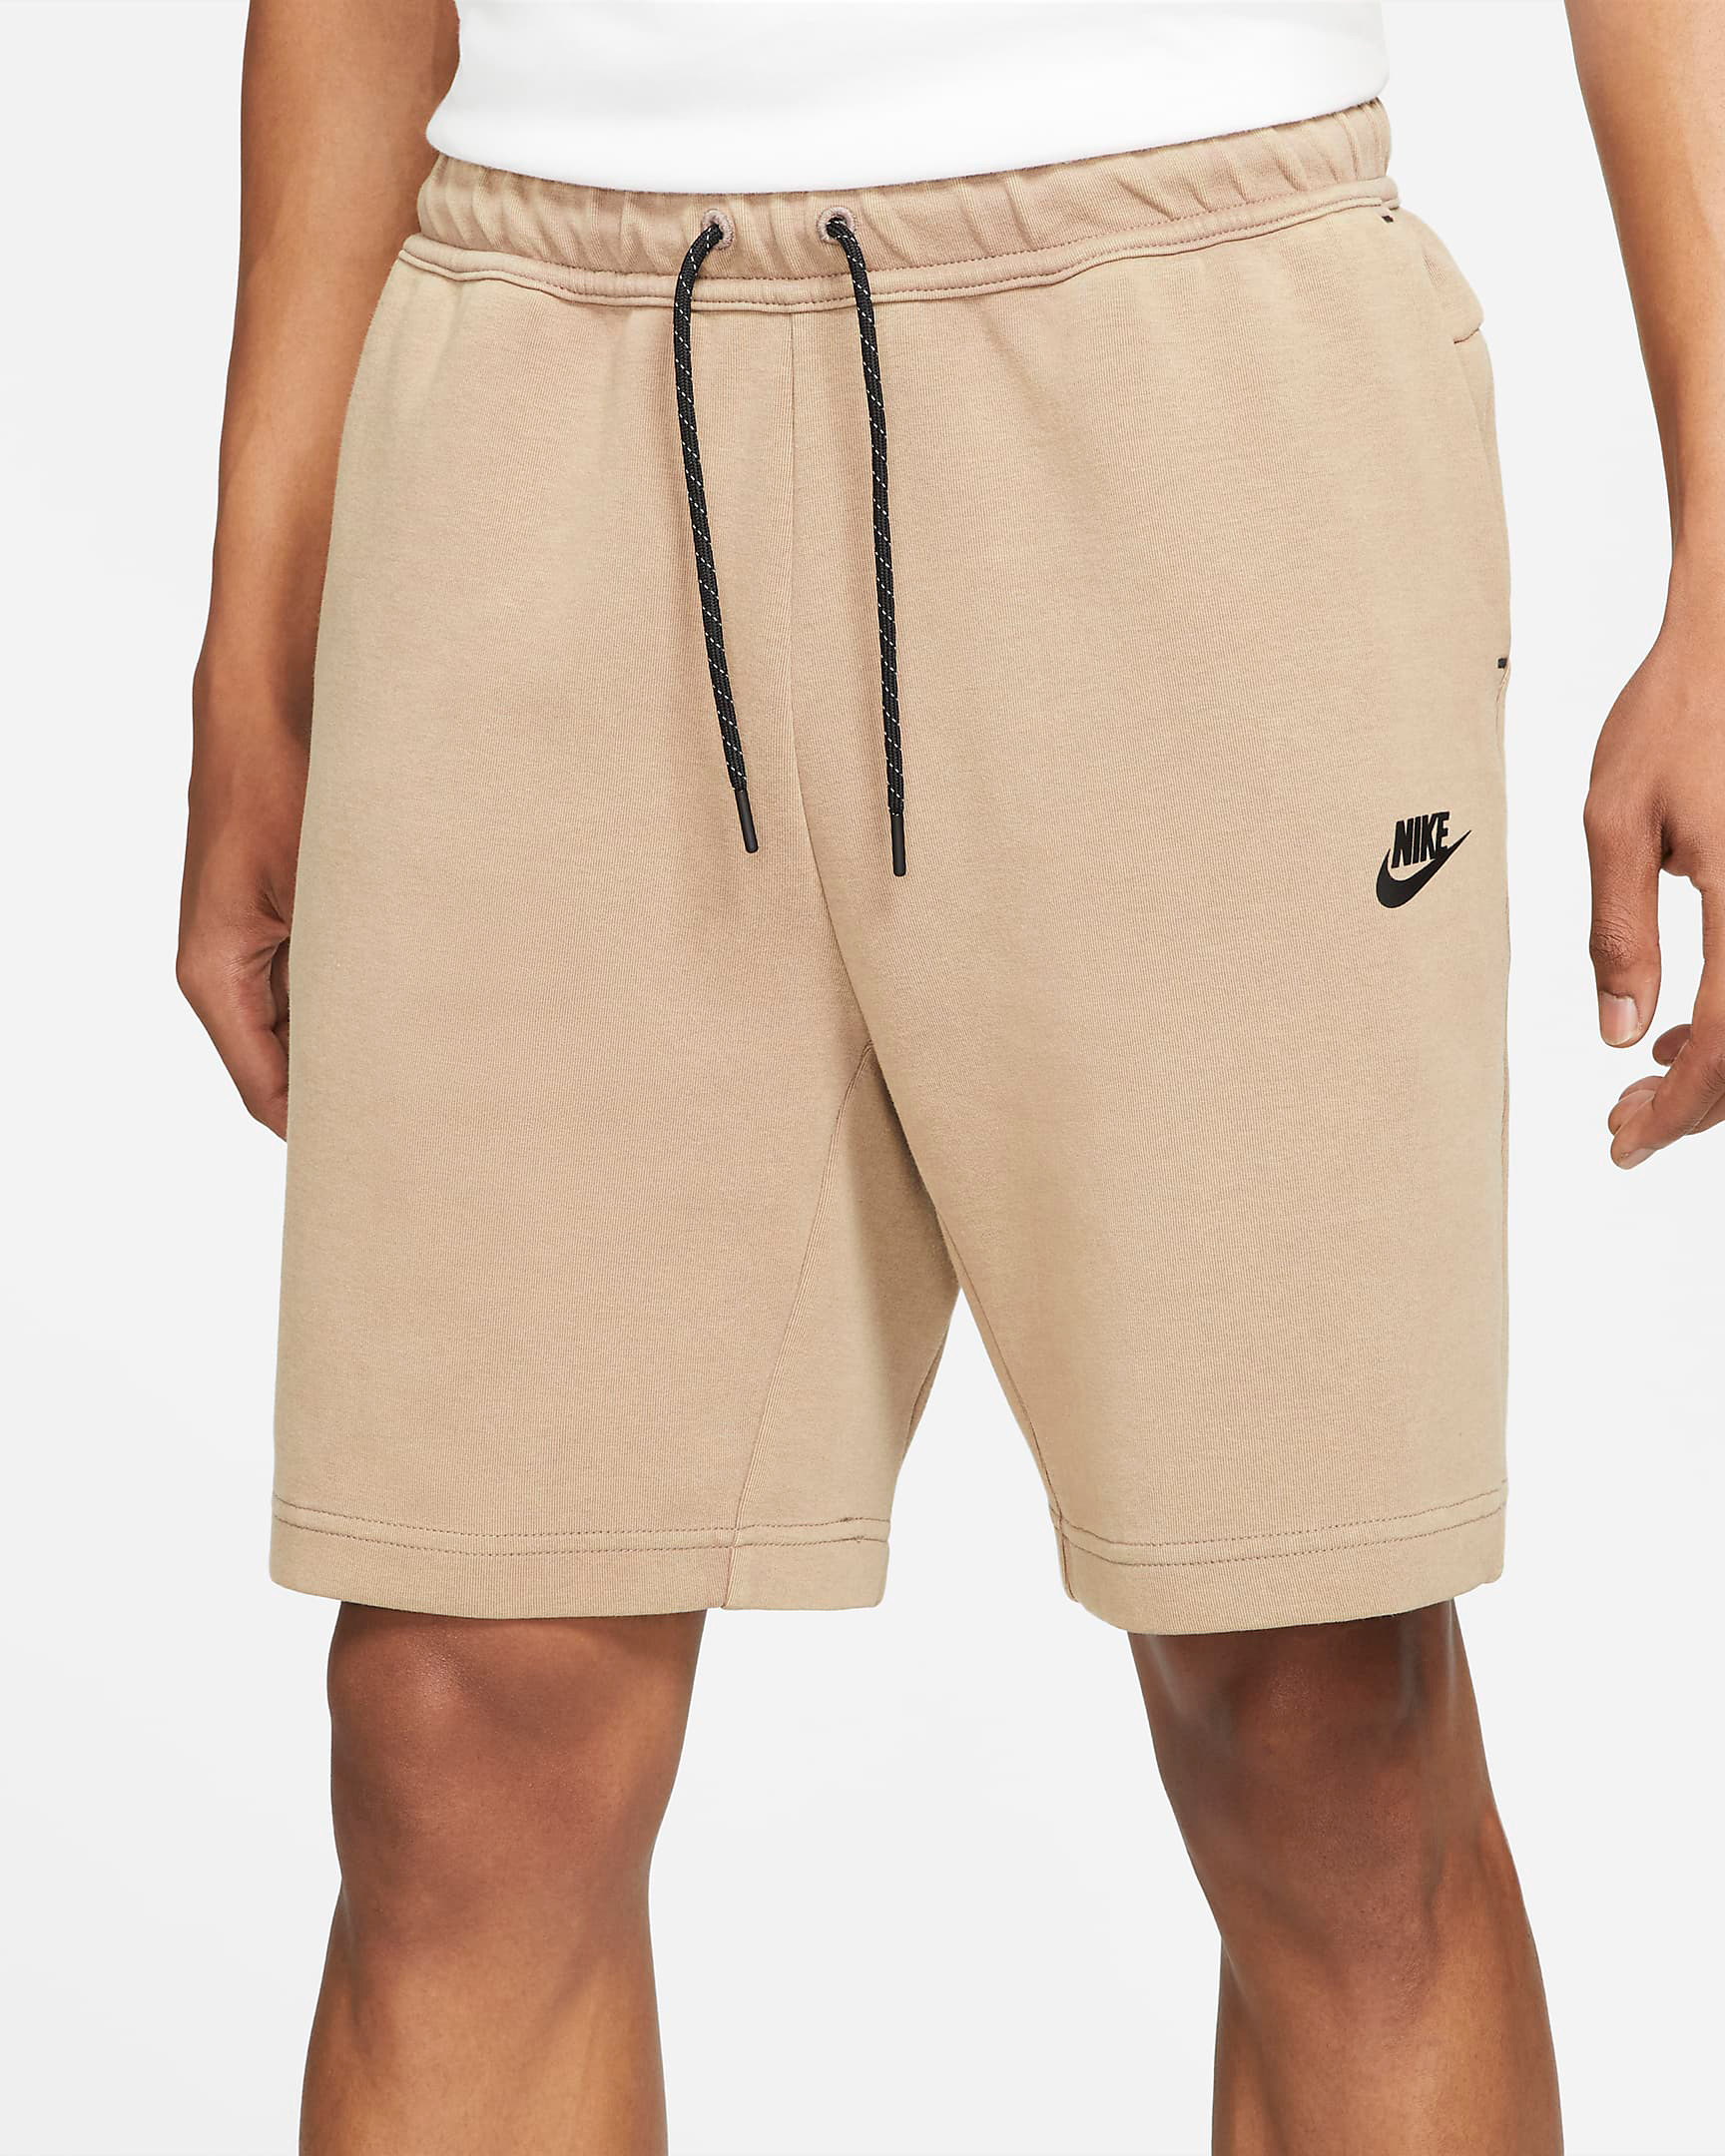 nike-taupe-haze-tech-fleece-shorts-2